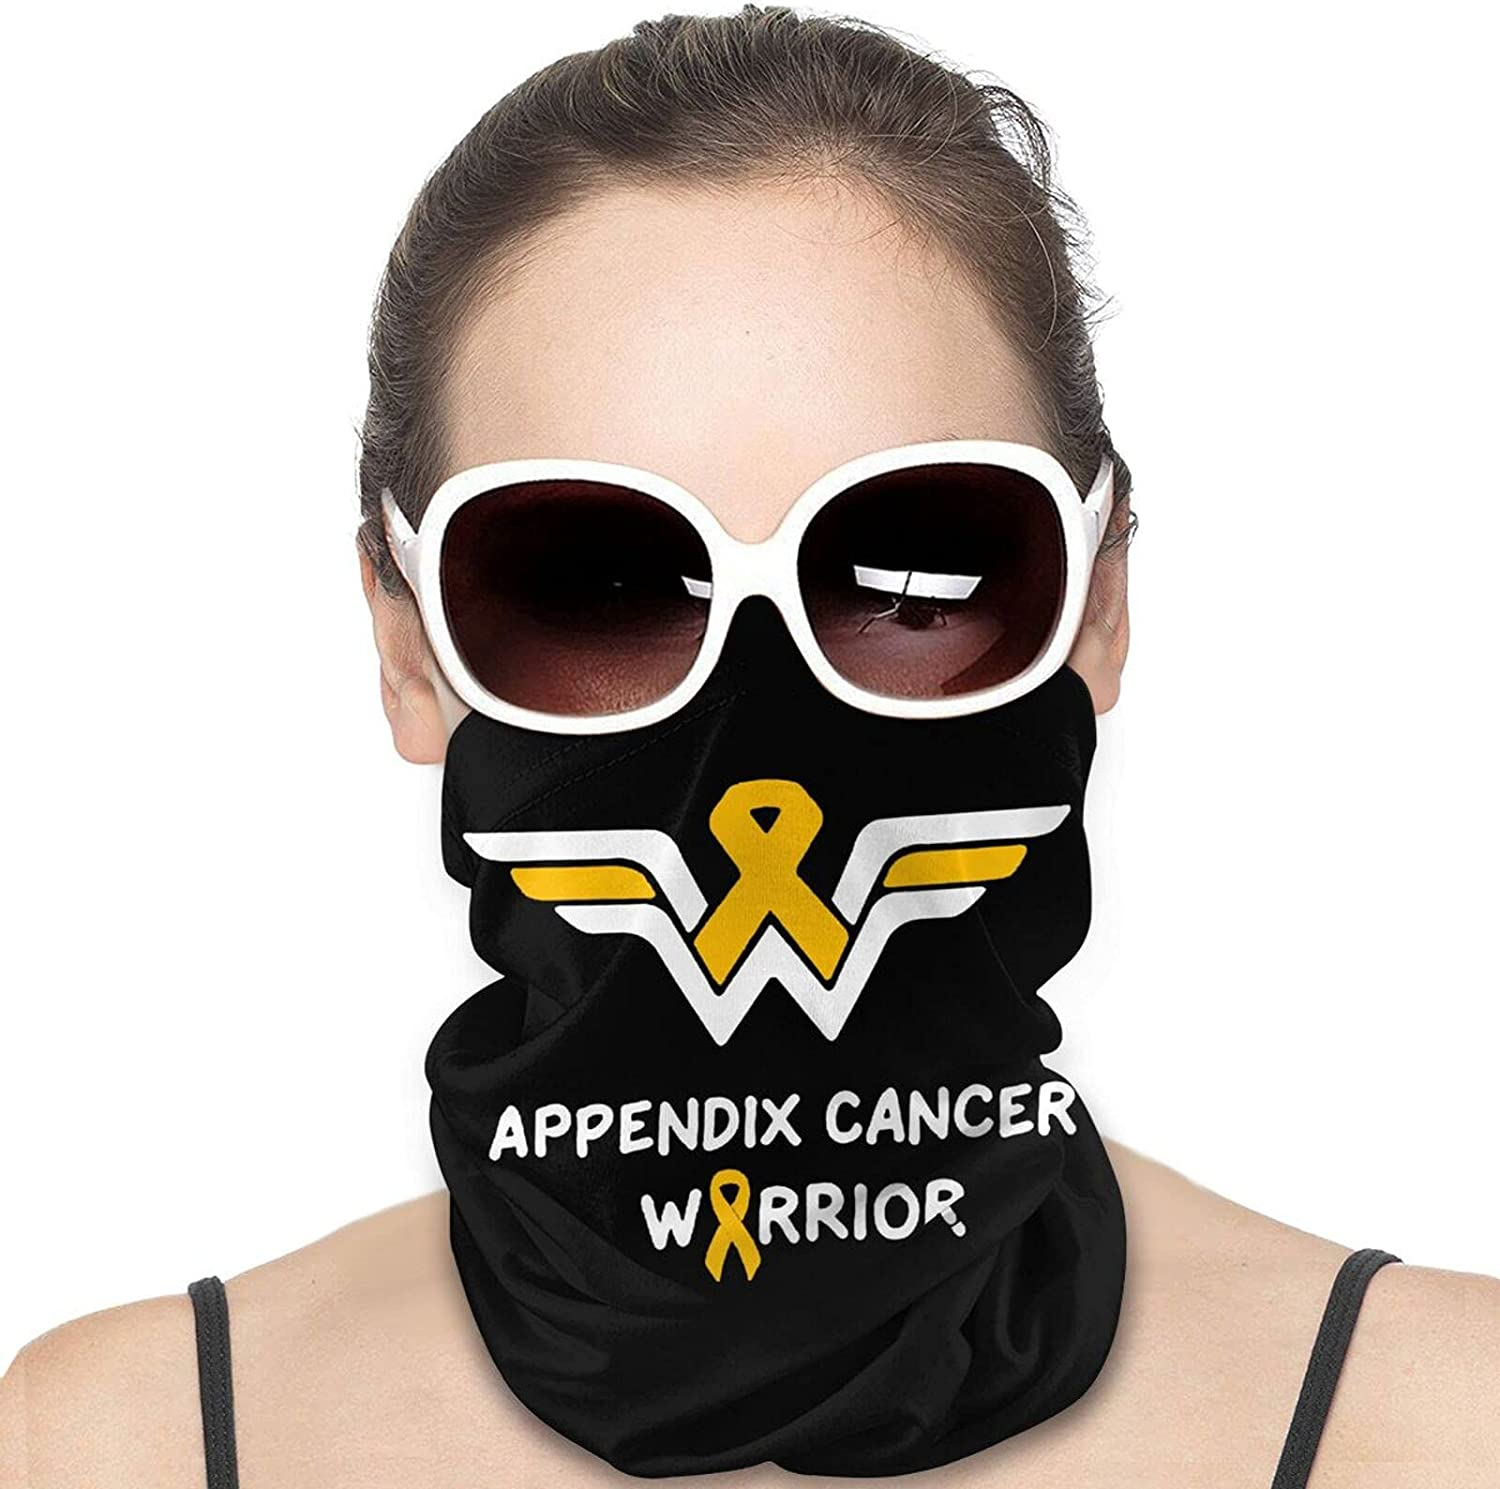 Appendix Cancer Awareness Round Neck Gaiter Bandnas Face Cover Uv Protection Prevent bask in Ice Scarf Headbands Perfect for Motorcycle Cycling Running Festival Raves Outdoors